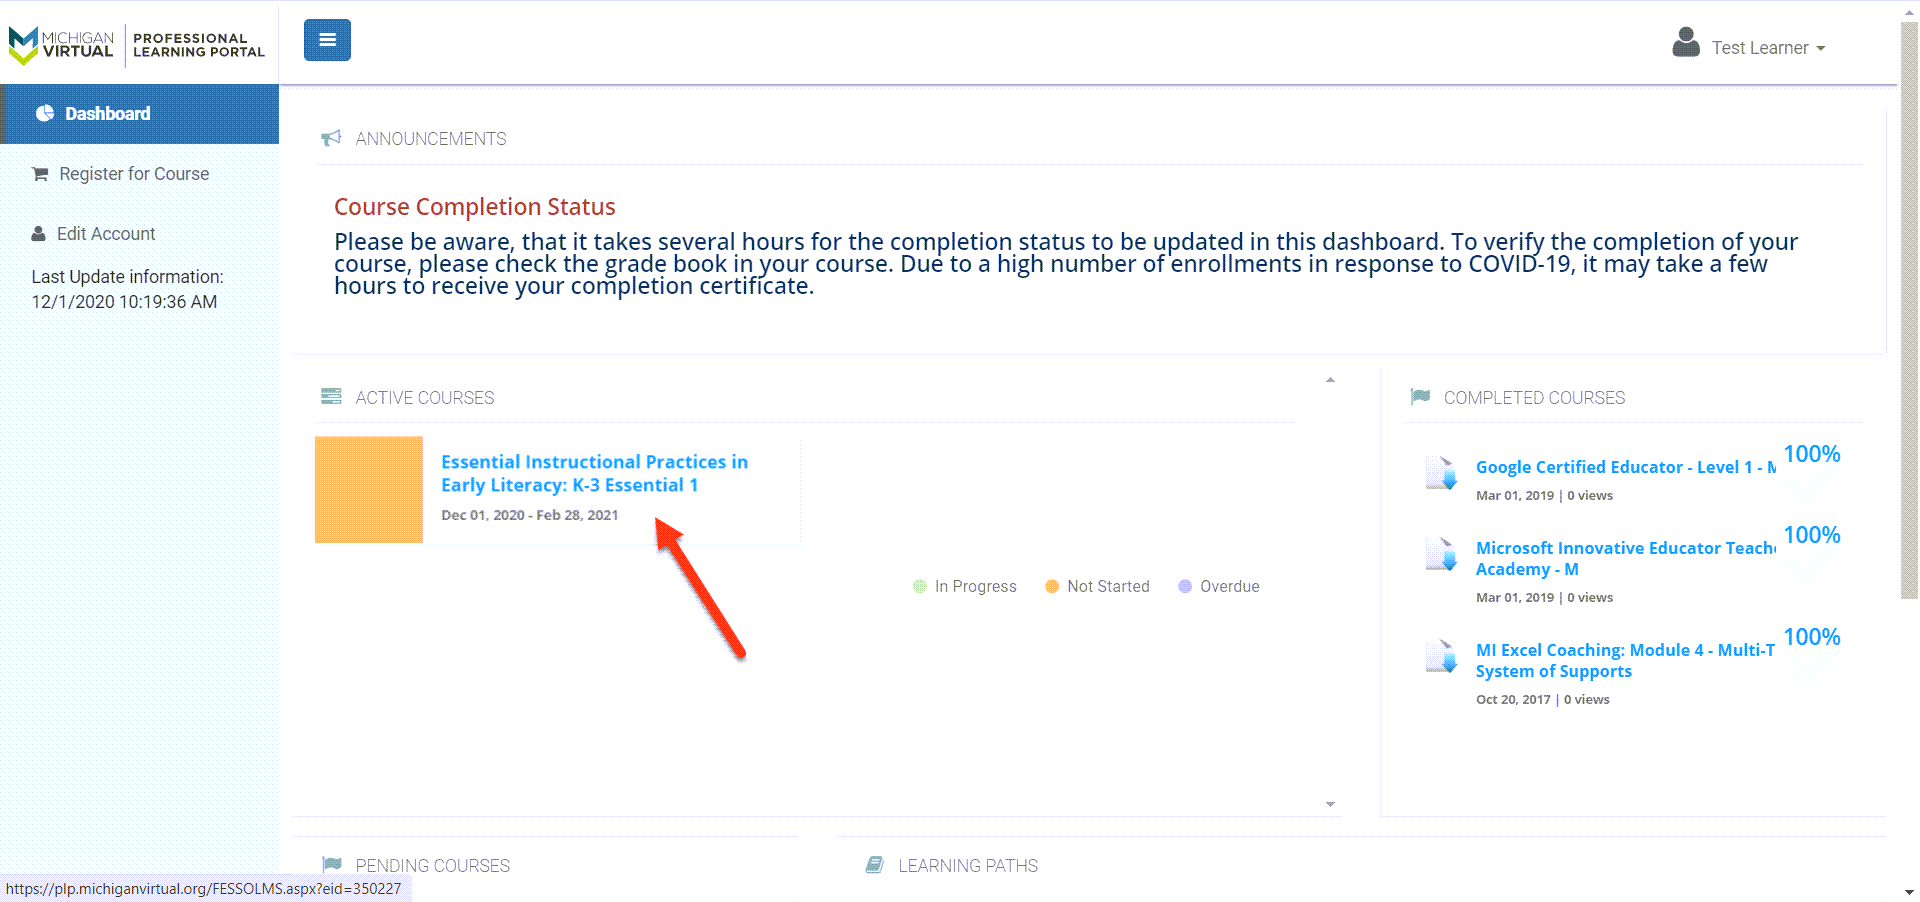 The Essential Instructional Practices in Early Literacy: K-3 Essential 1 course appears as a tile within the Active Courses module on the user dashboard. An arrow points to this tile.